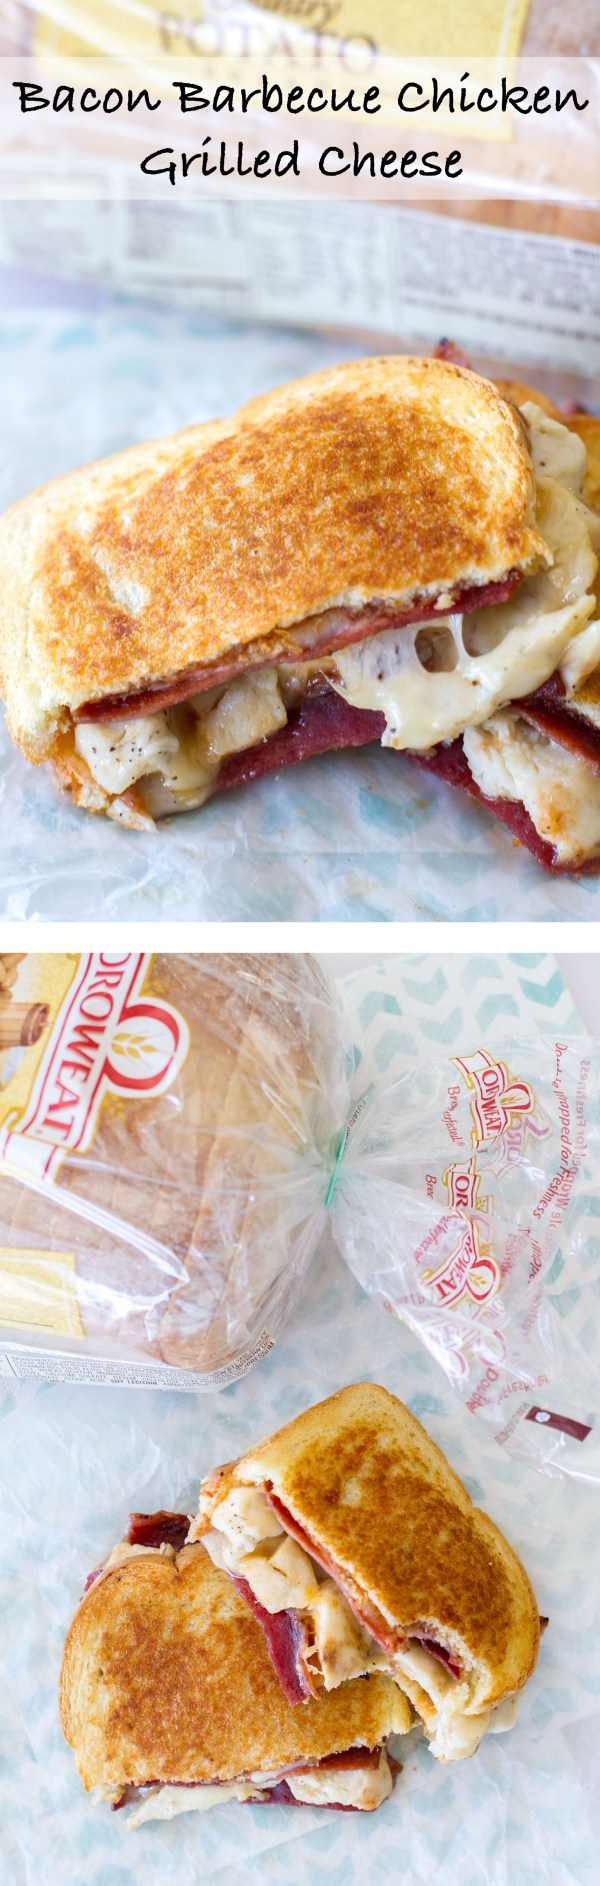 Packed with the works, this grilled cheese is comfort food at its finest. Cheesy bacon goodness. | www.alattefood.com